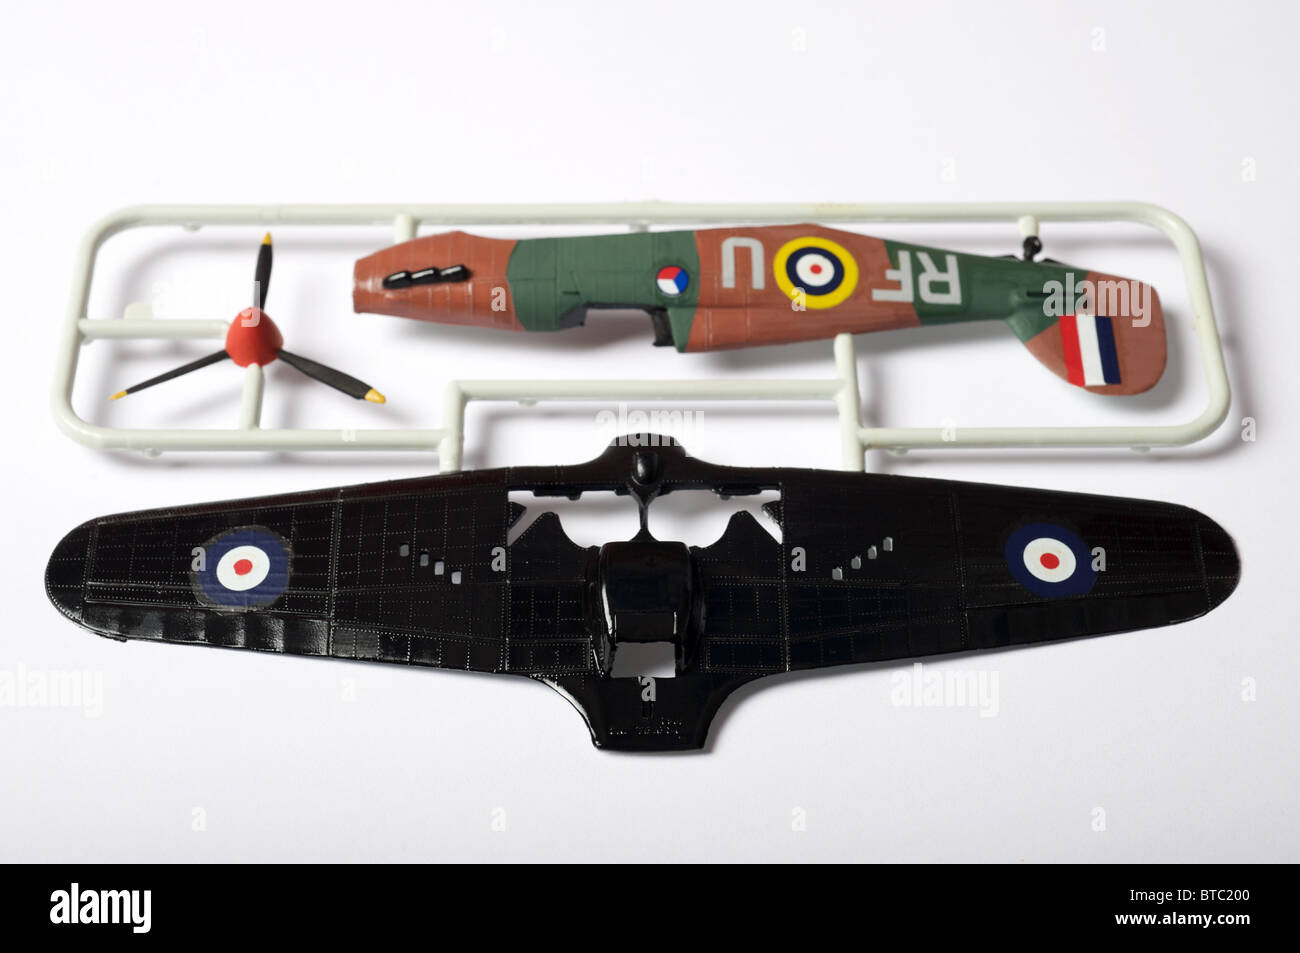 Revell 1:72 scale Hawker Hurricane MK.1 plastic model kit. - Stock Image